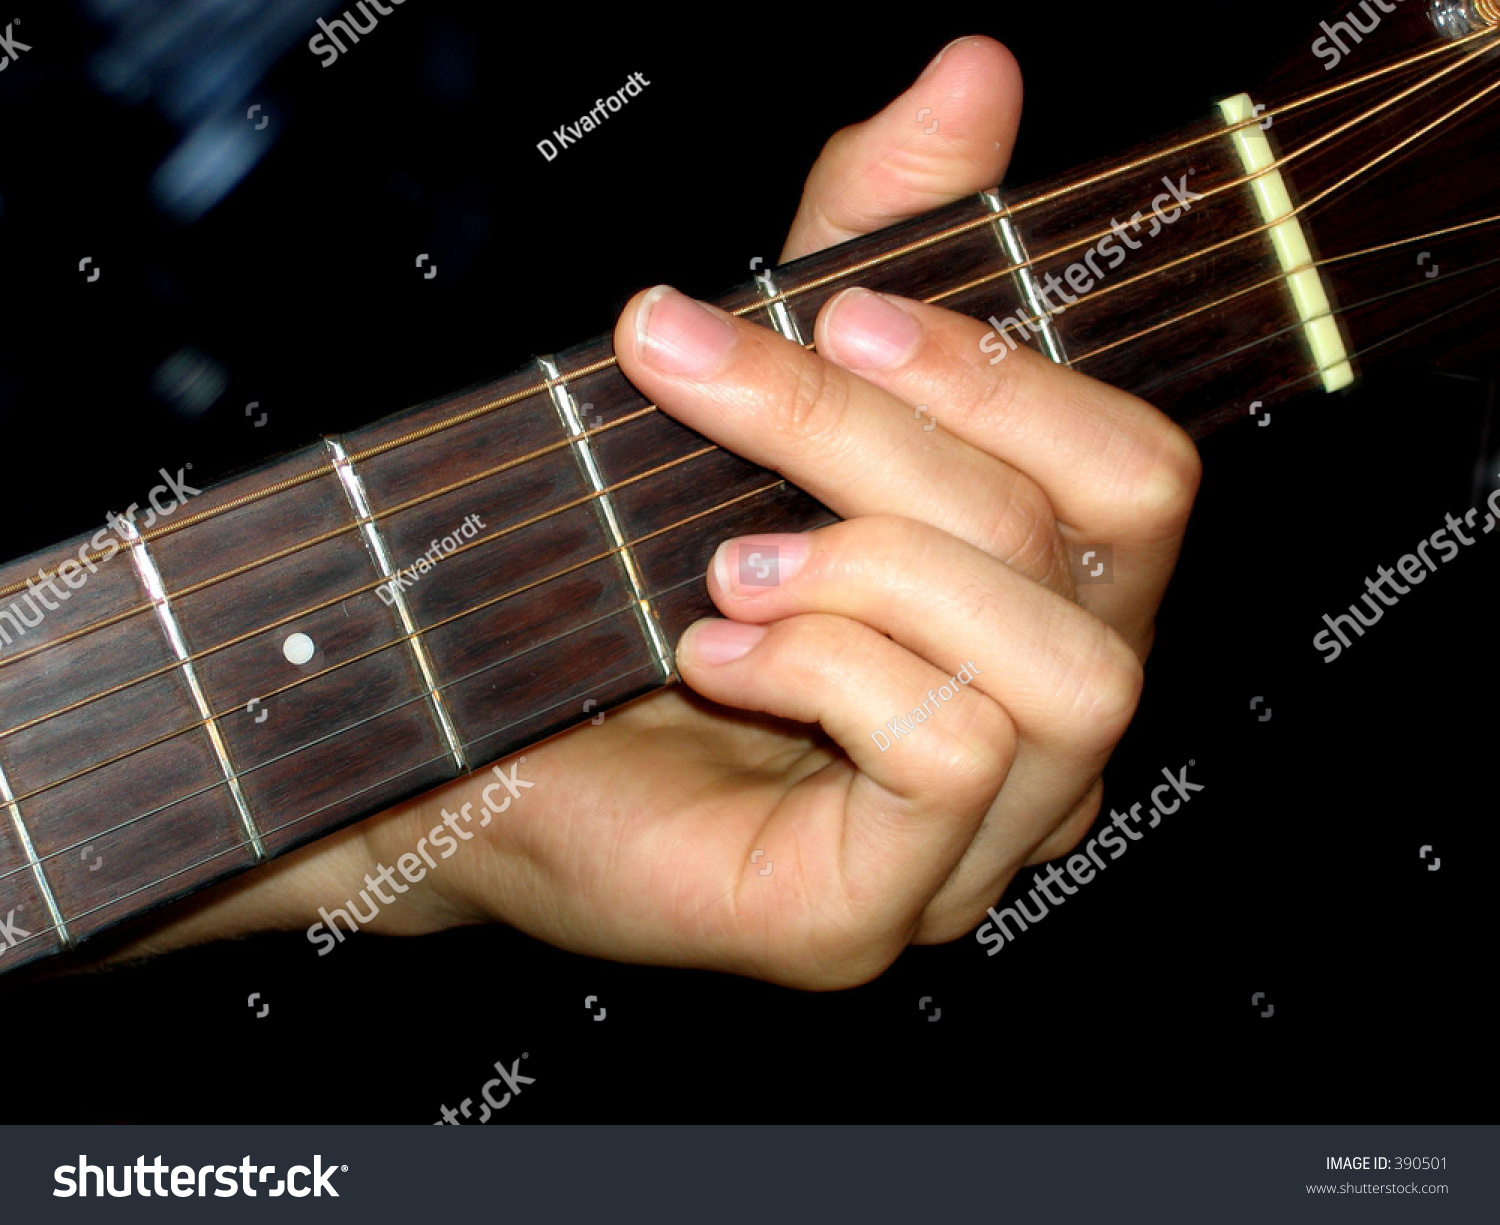 Hand taking guitar chord g major stock photo 390501 shutterstock a hand taking a guitar chord g major hexwebz Choice Image